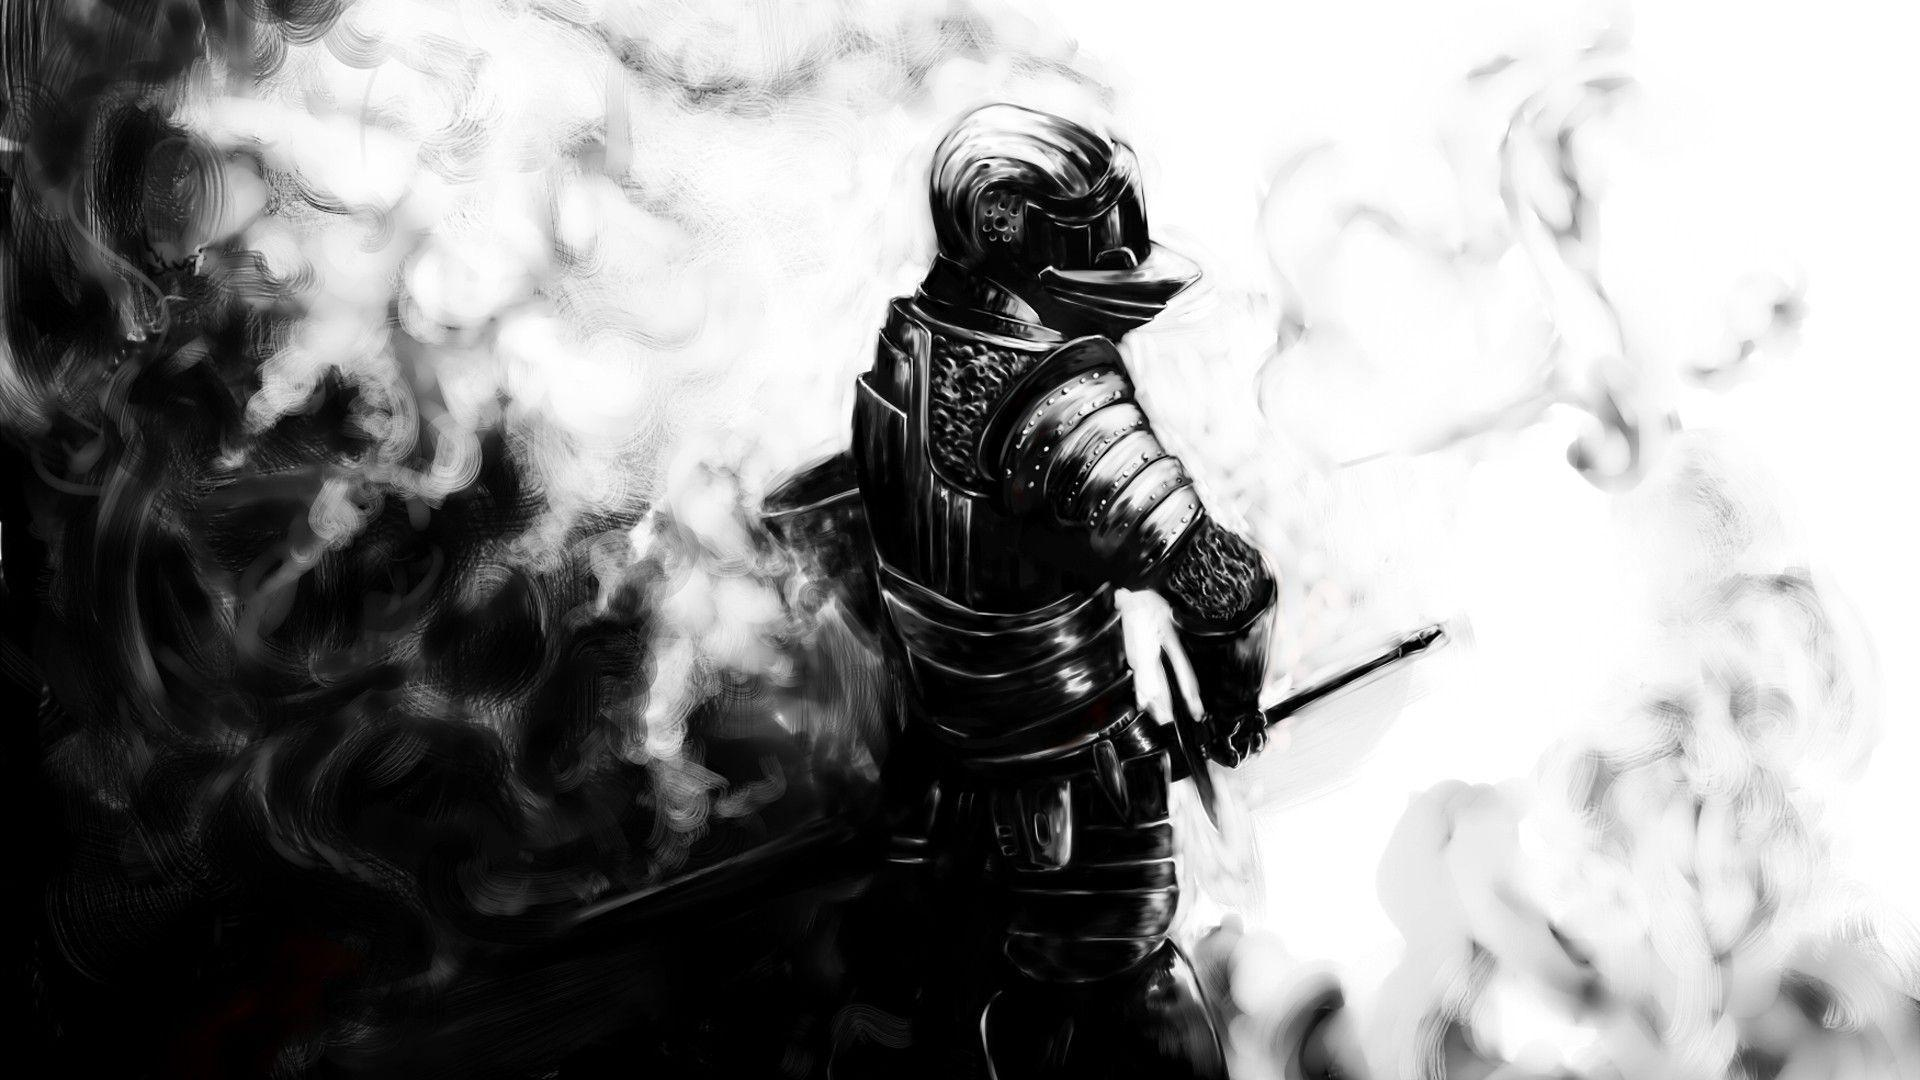 dark souls wallpaper breaking - photo #7